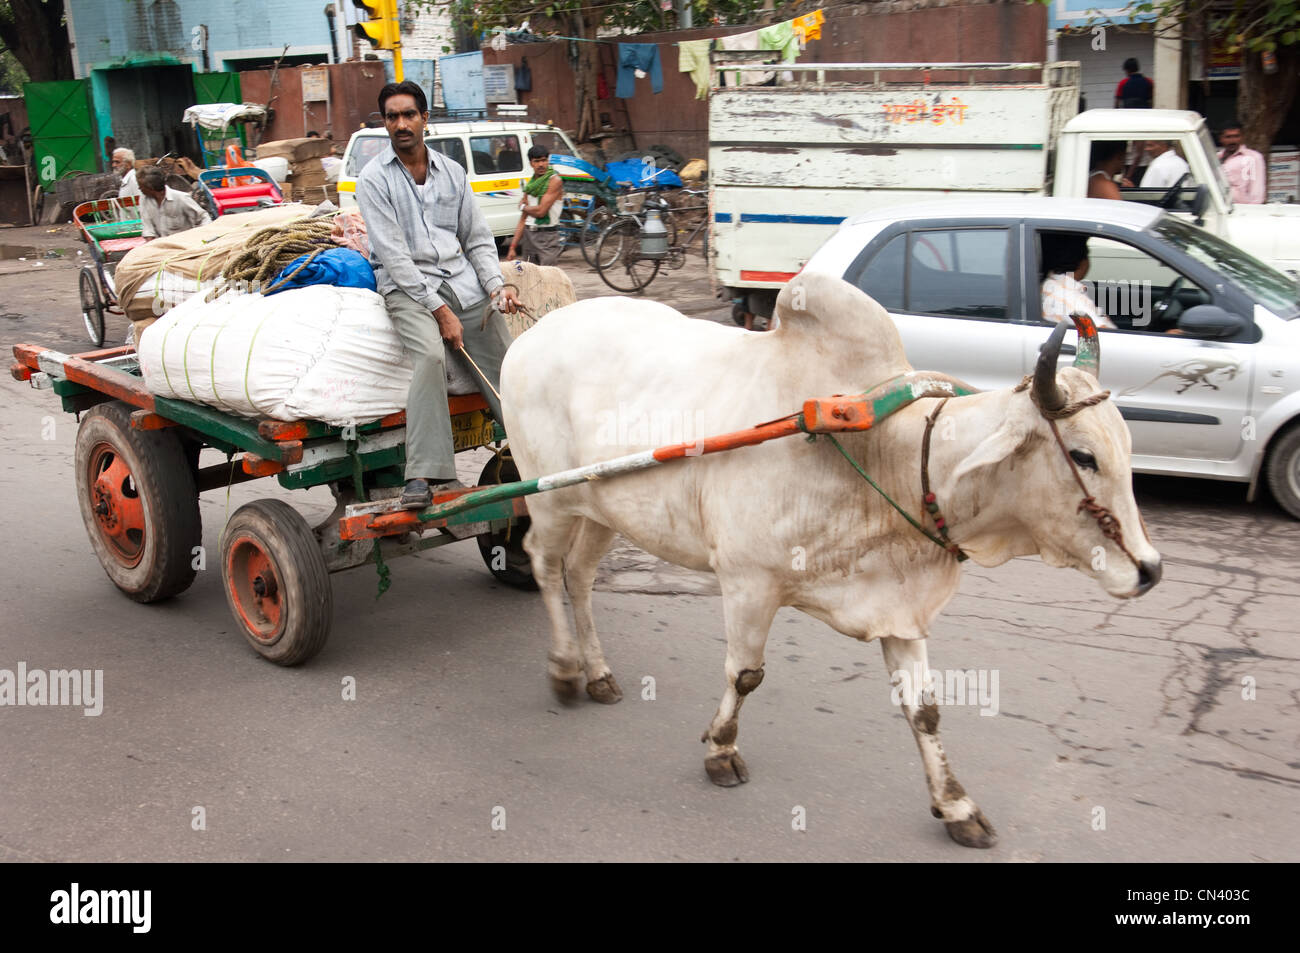 A cow pulls a cart in an Indian street - Stock Image